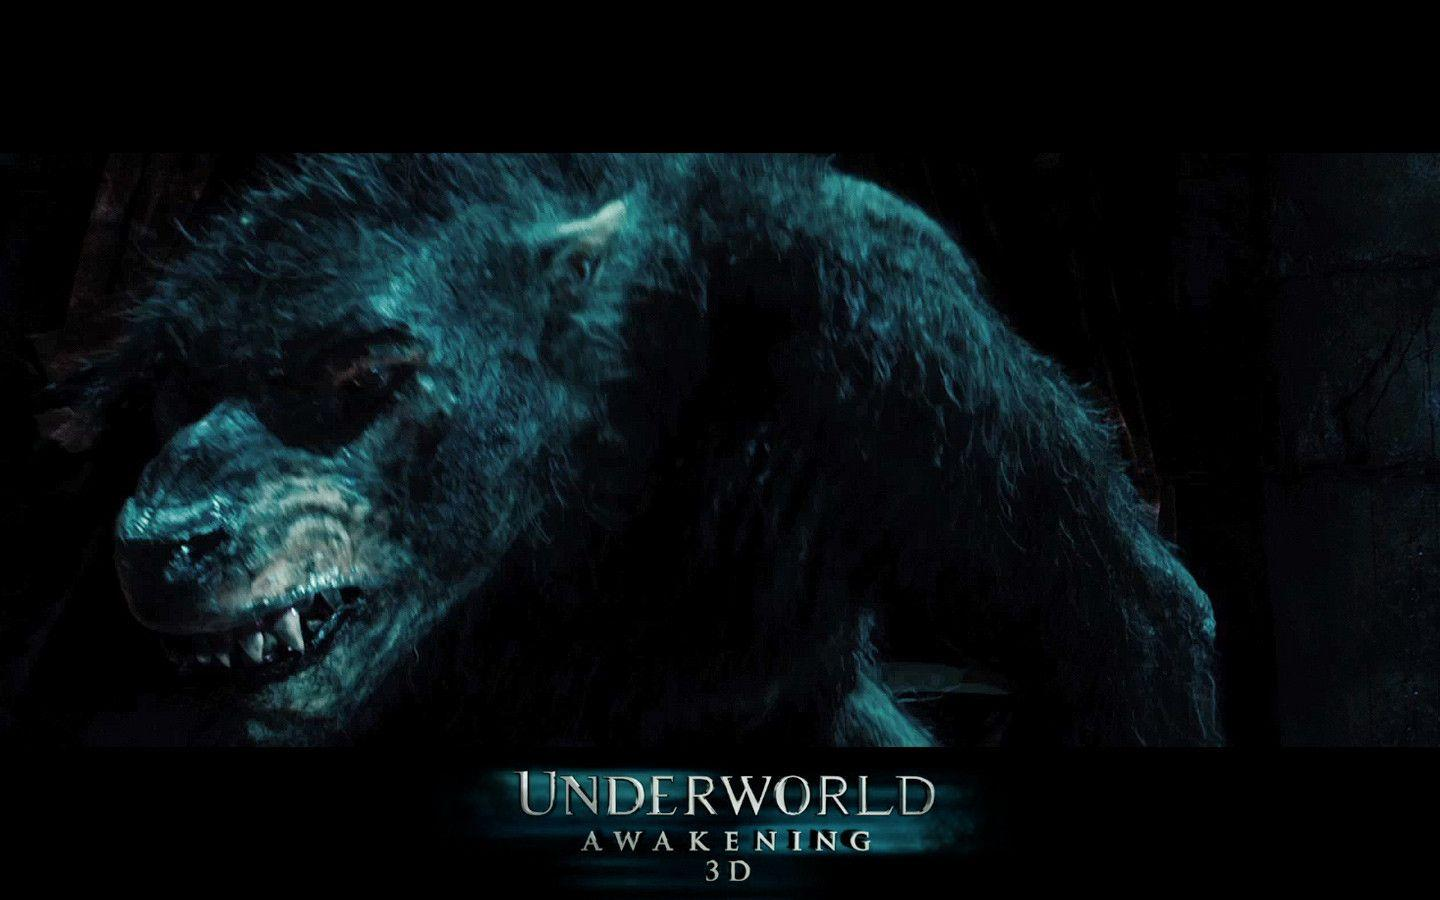 underworld werewolf wallpapers - wallpaper cave